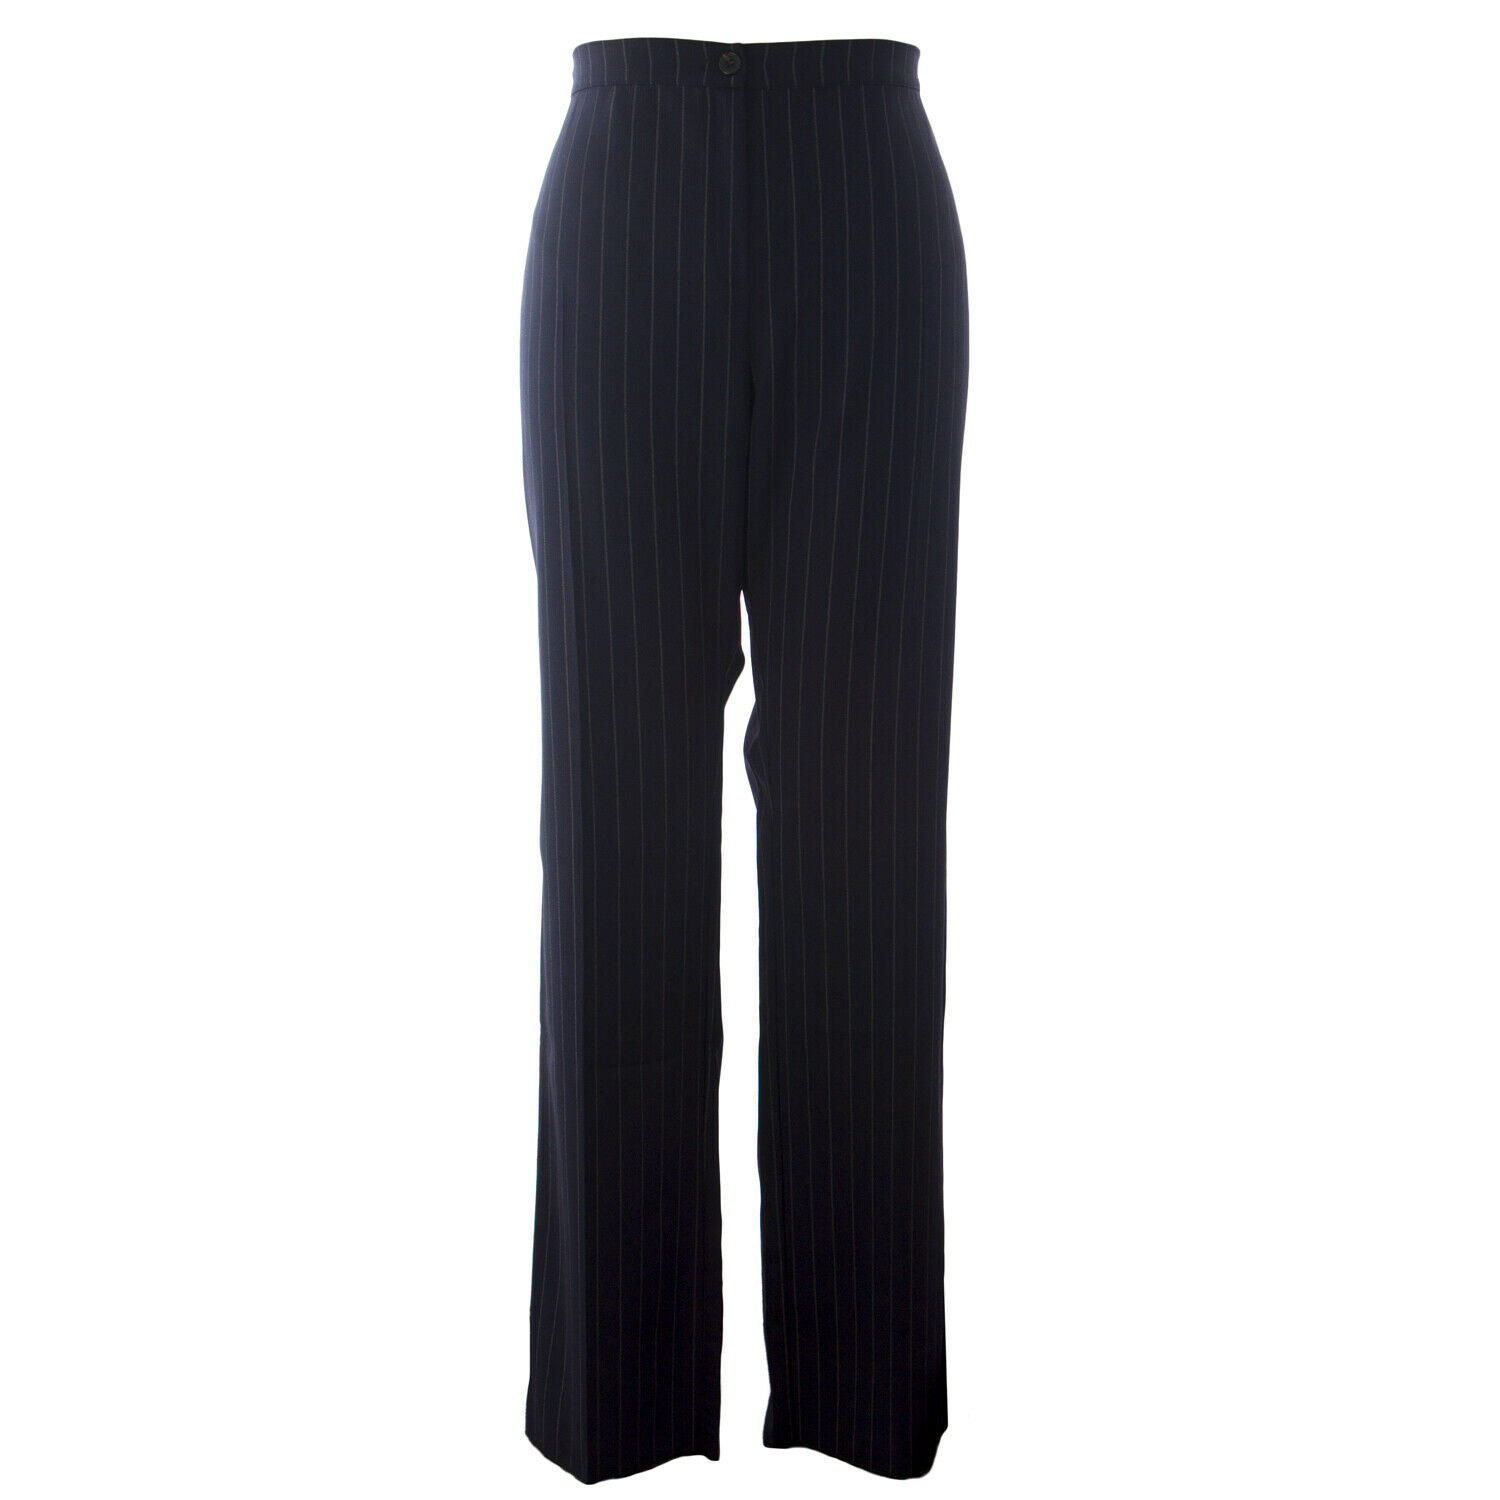 MARINA RINALDI Women's Navy Rapido Stripe High Waist Trousers NWT